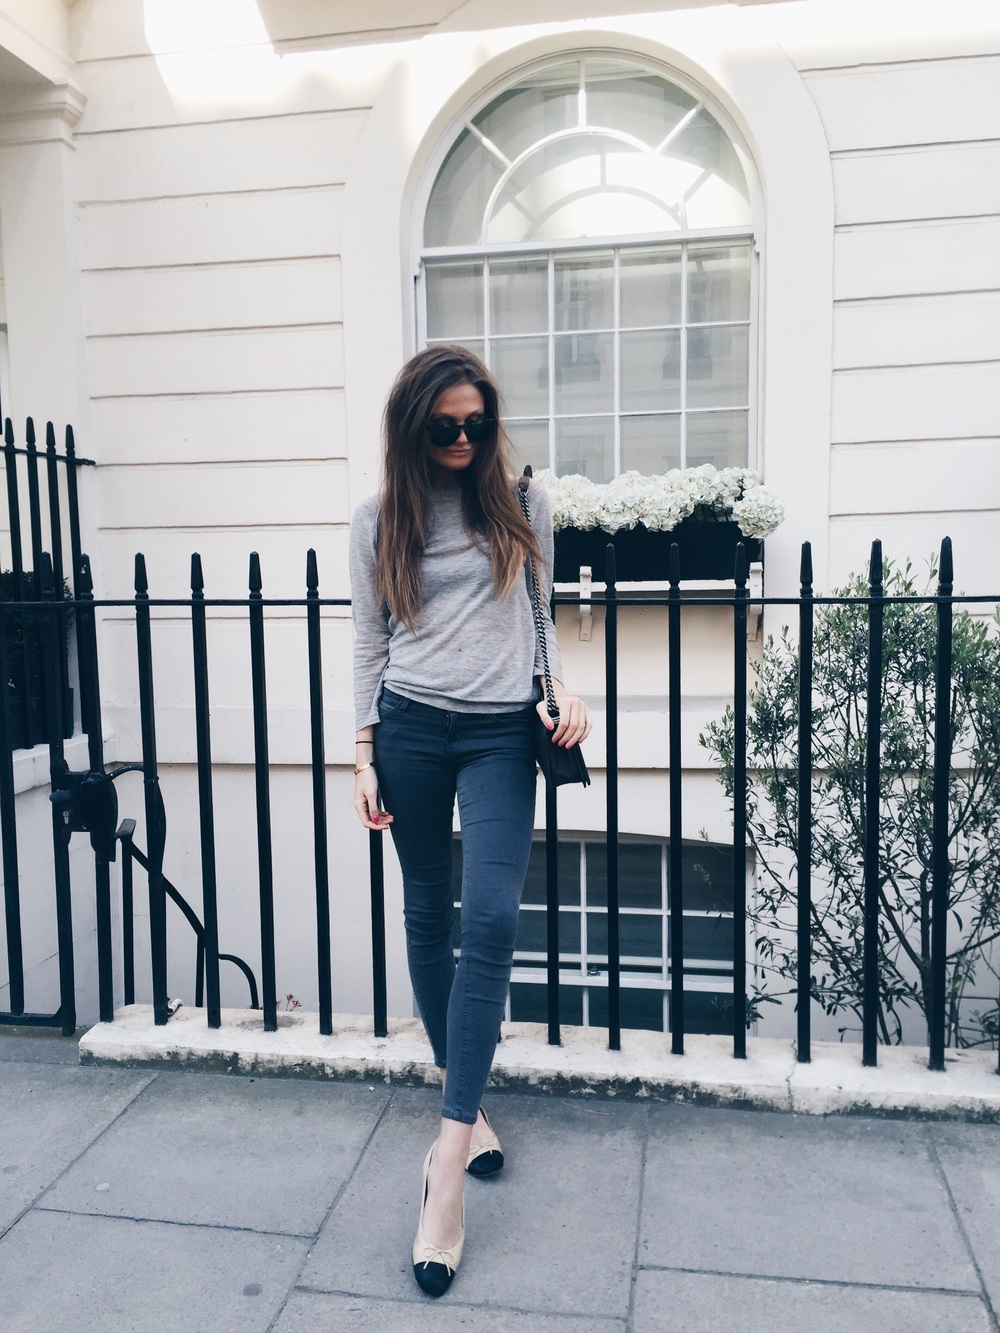 Filippa Hagg has chosen to wear dark skinny jeans with classic ballet pumps, creating a casual but sophisticated style which is perfect for everyday wear! Wear the look with a simple knit sweater or block print tee to steal Filippa's style. Top: Joseph, Jeans: Elliot, Flats: Chanel.